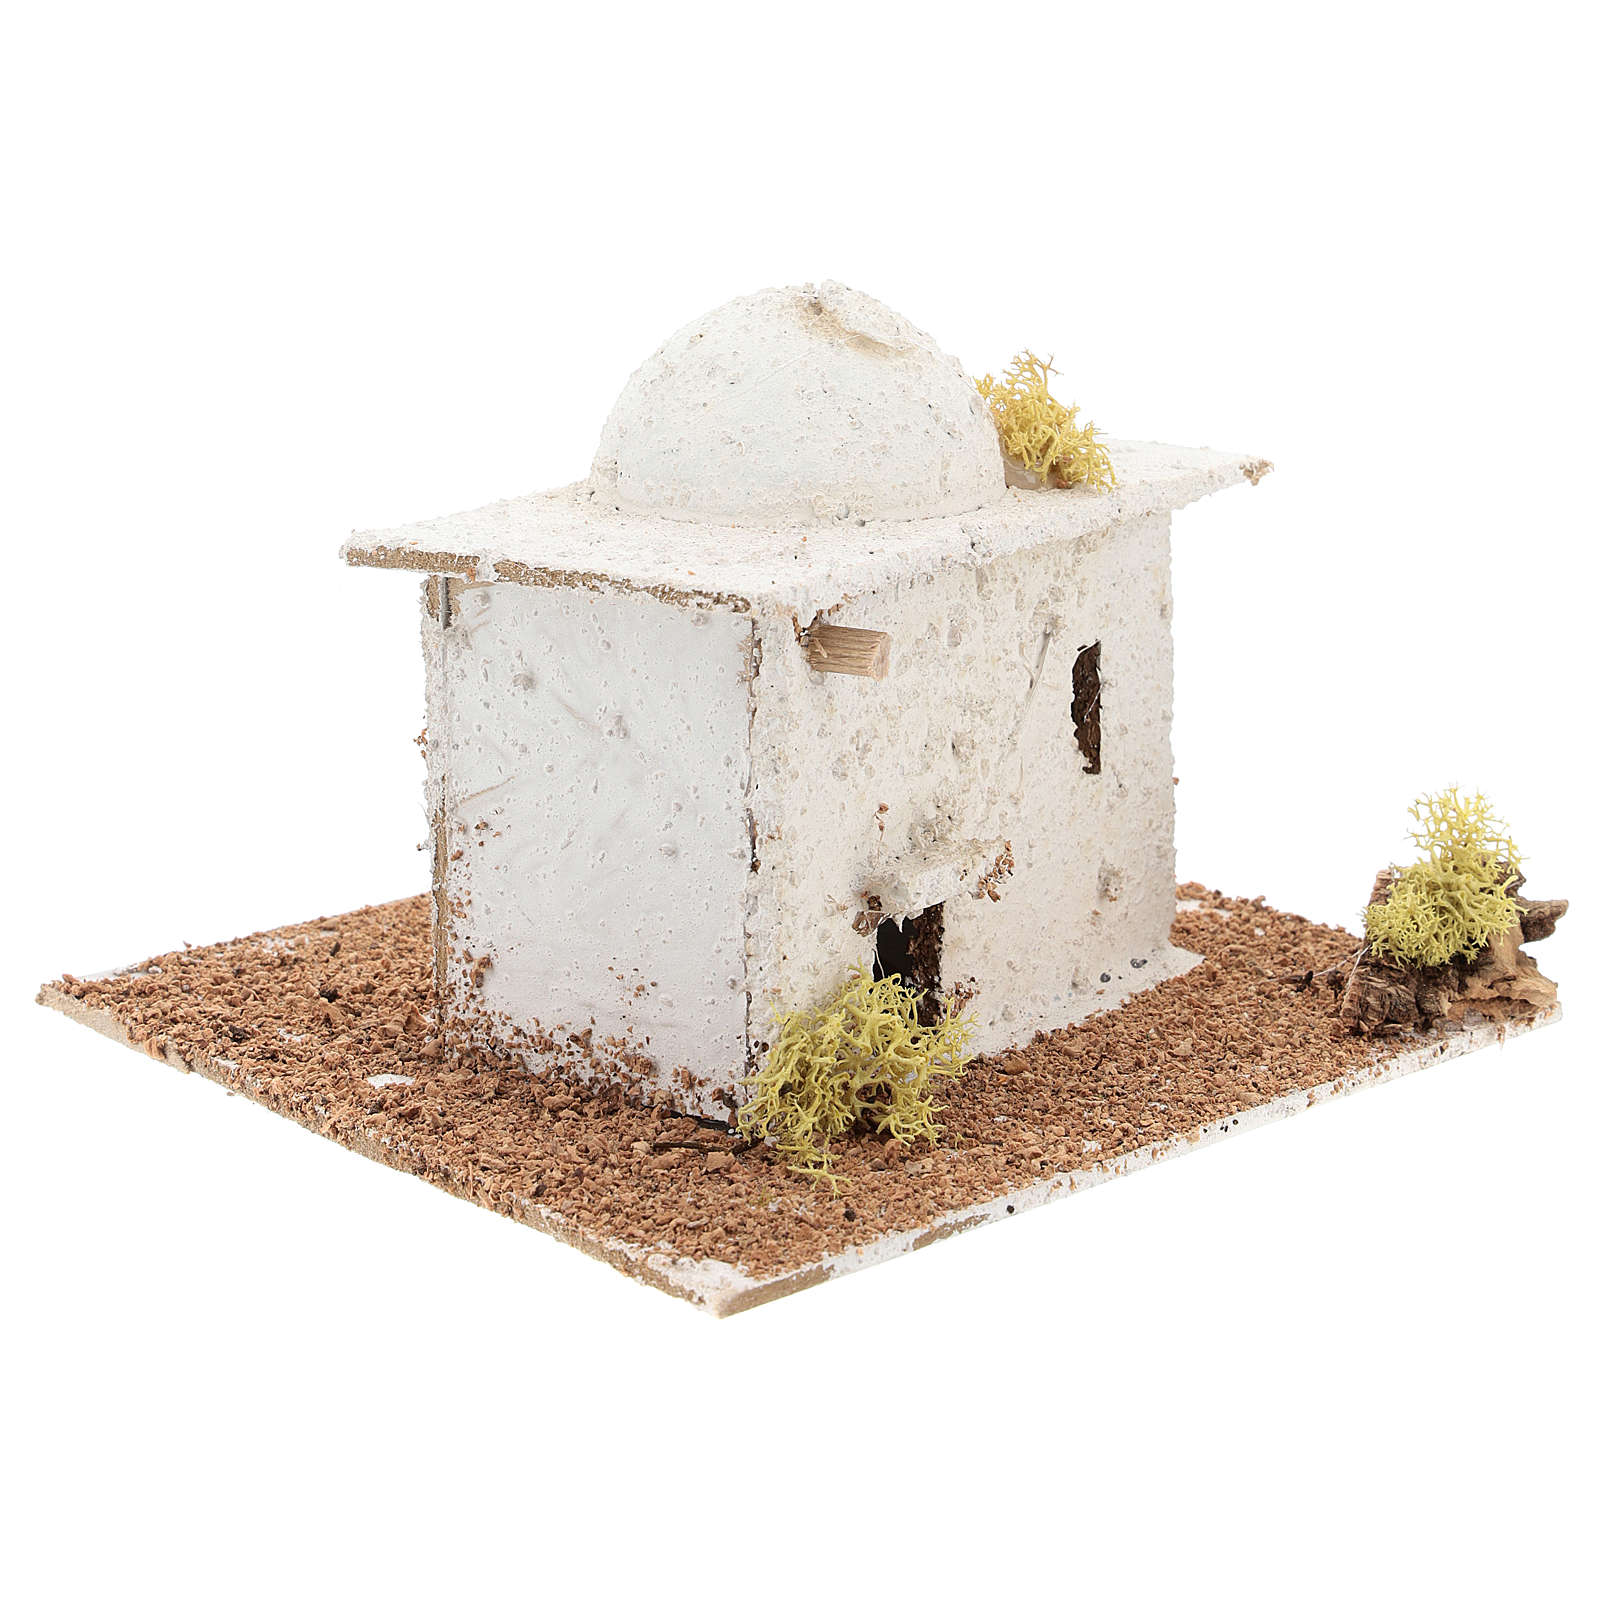 Arabic style house with dome for Neapolitan Nativity scene of 6 cm 4